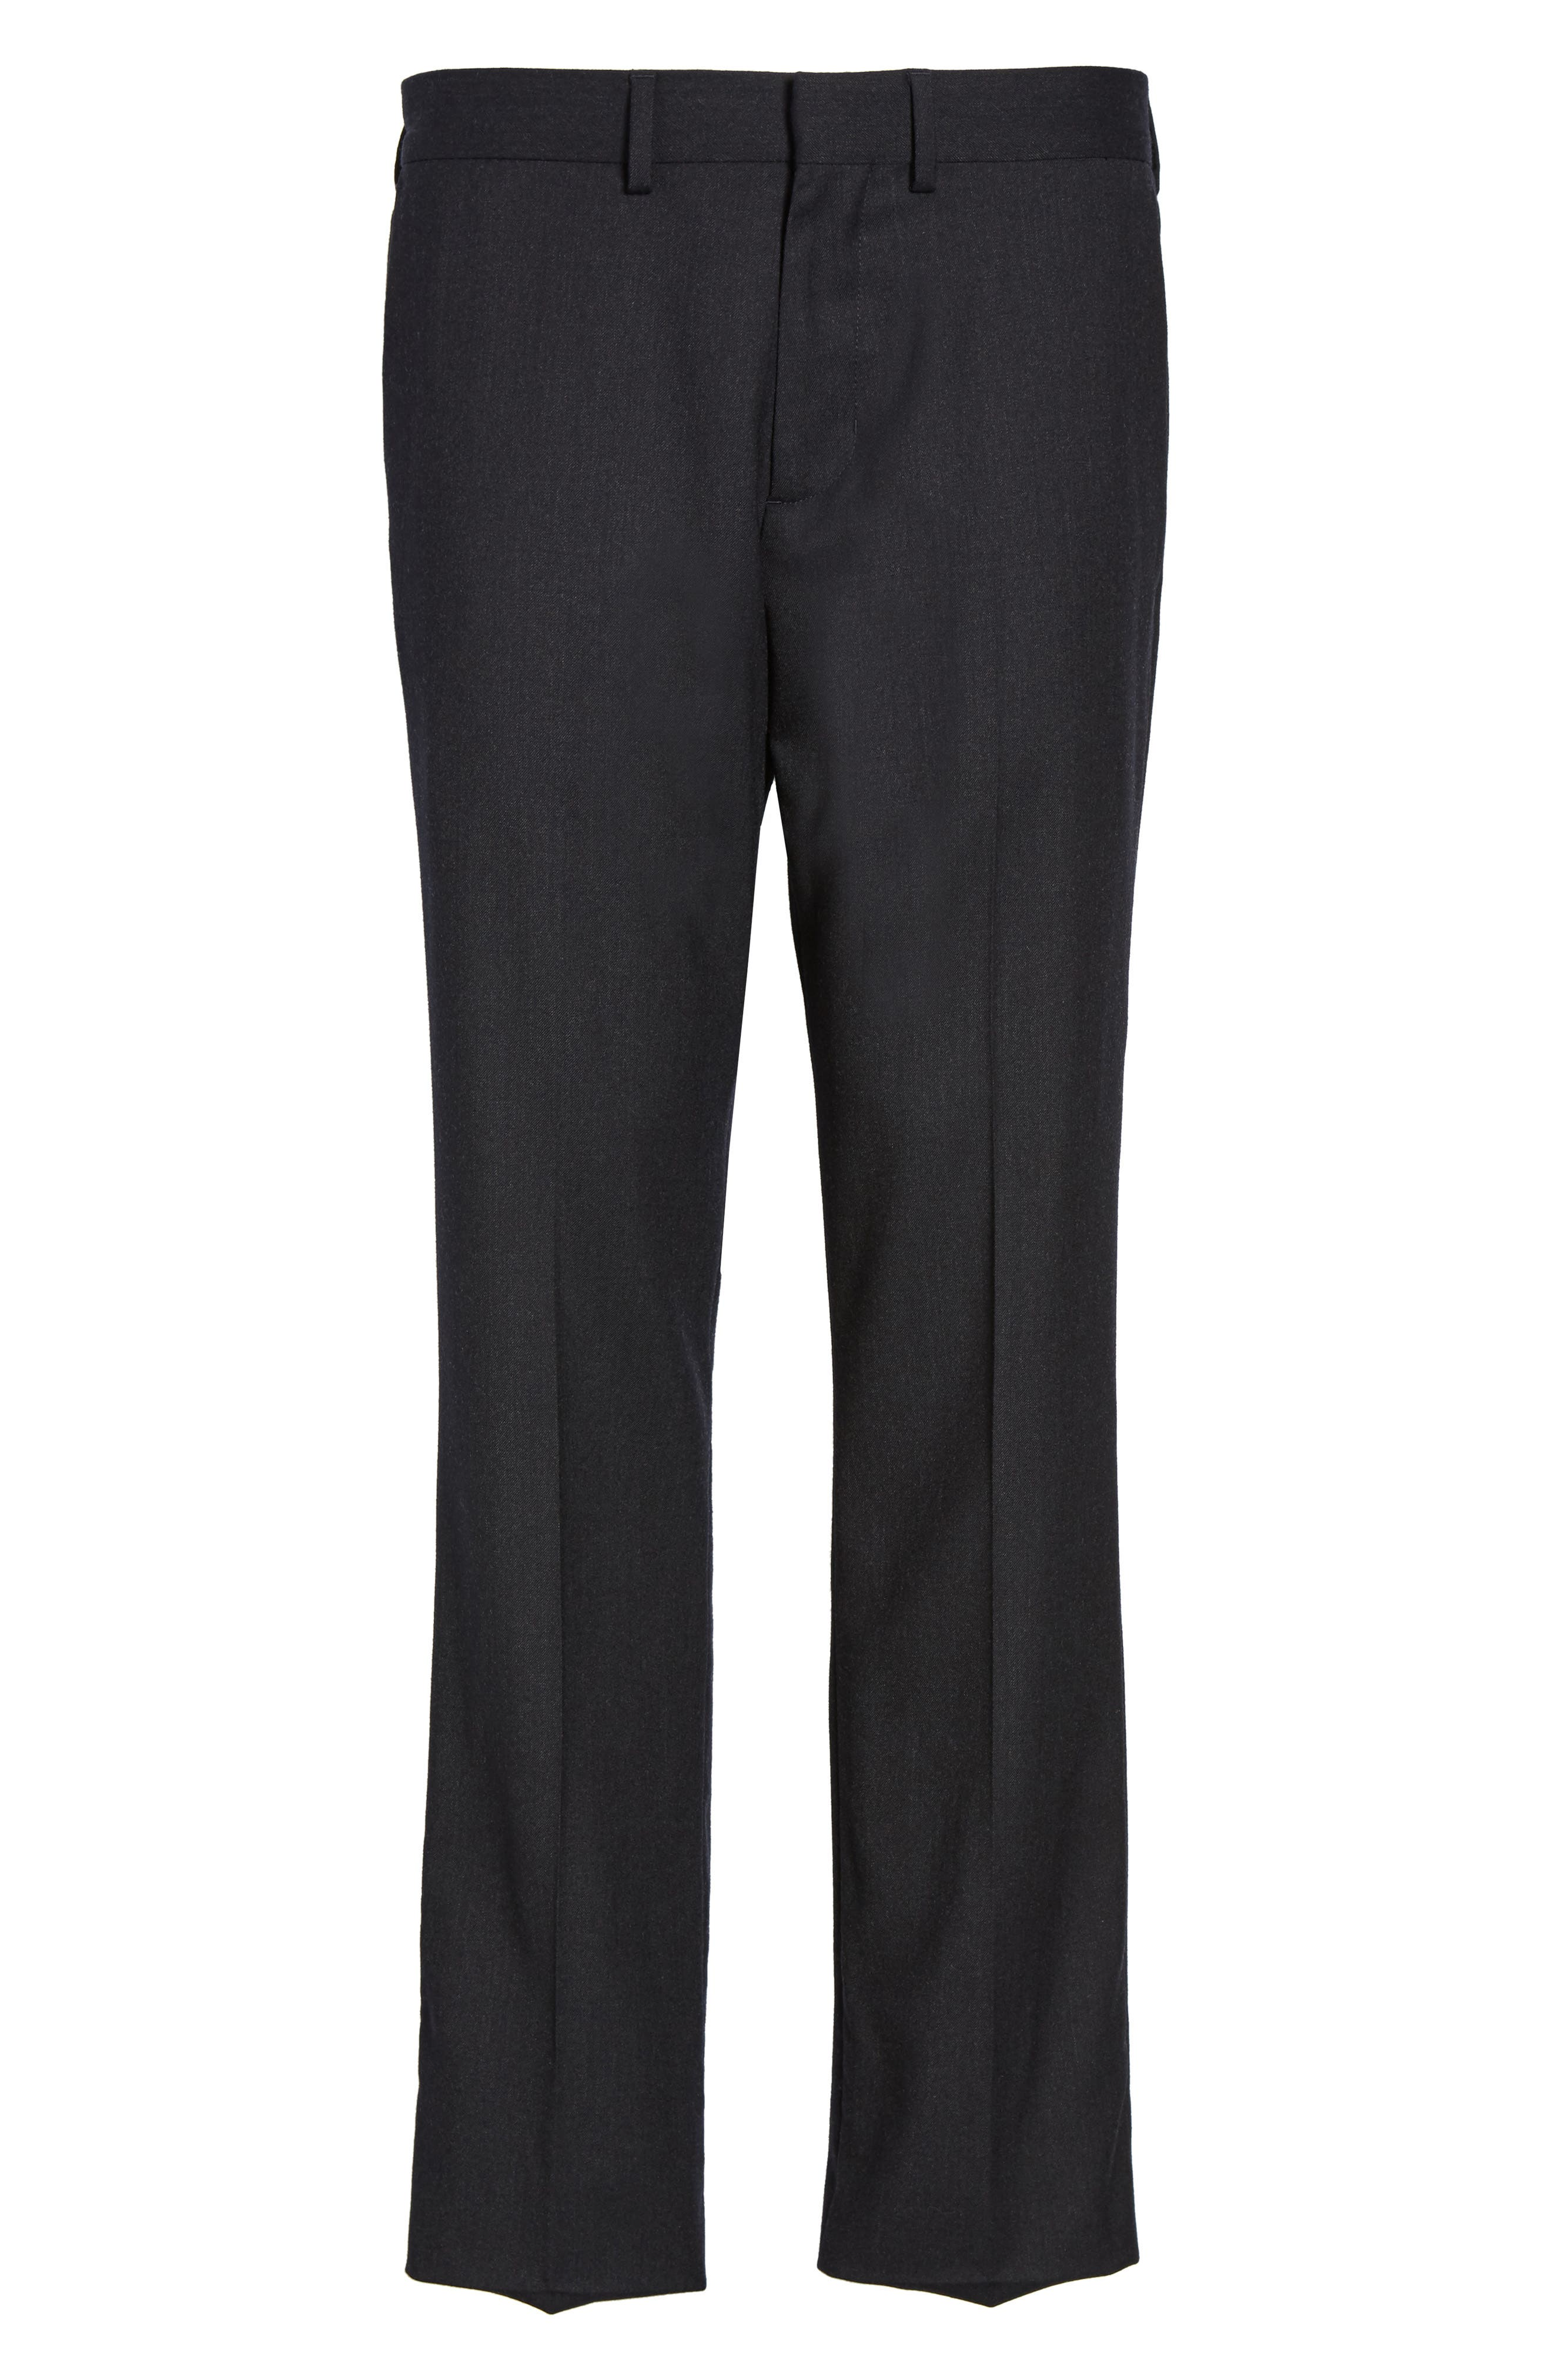 Regular Fit Wool Trousers,                             Alternate thumbnail 6, color,                             021